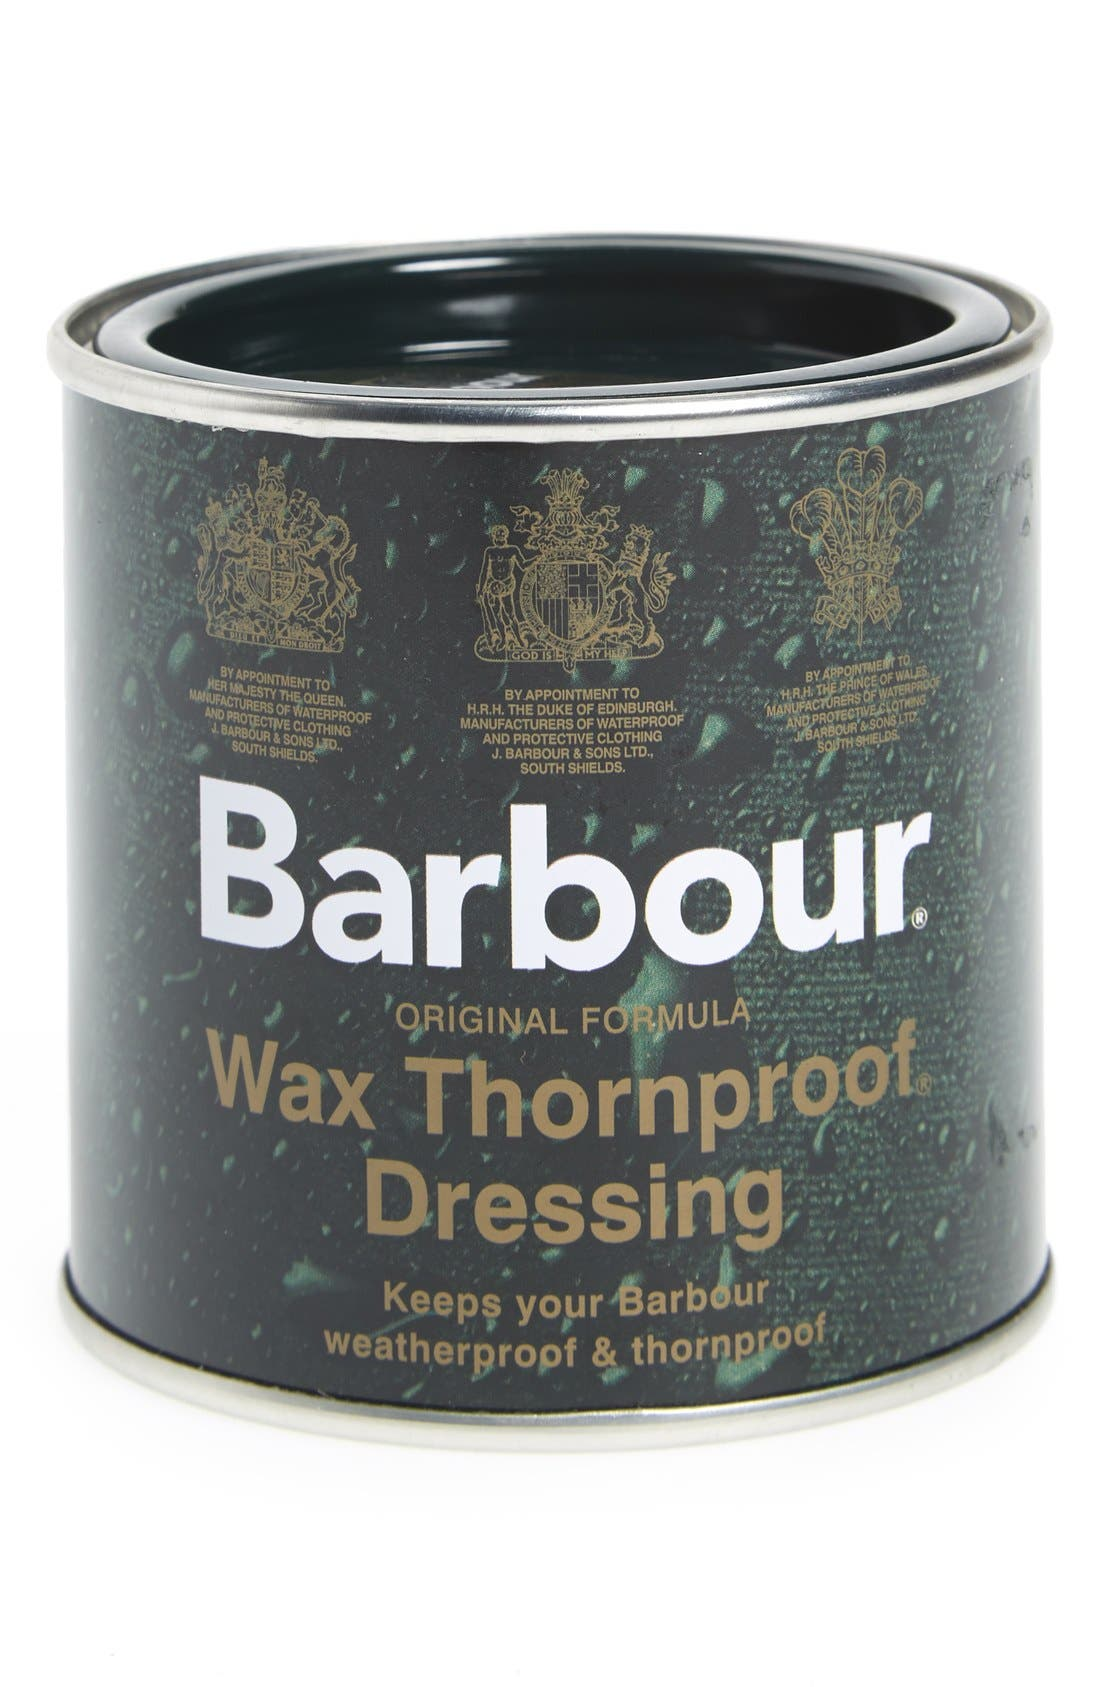 Main Image - Barbour Wax Thornproof Dressing